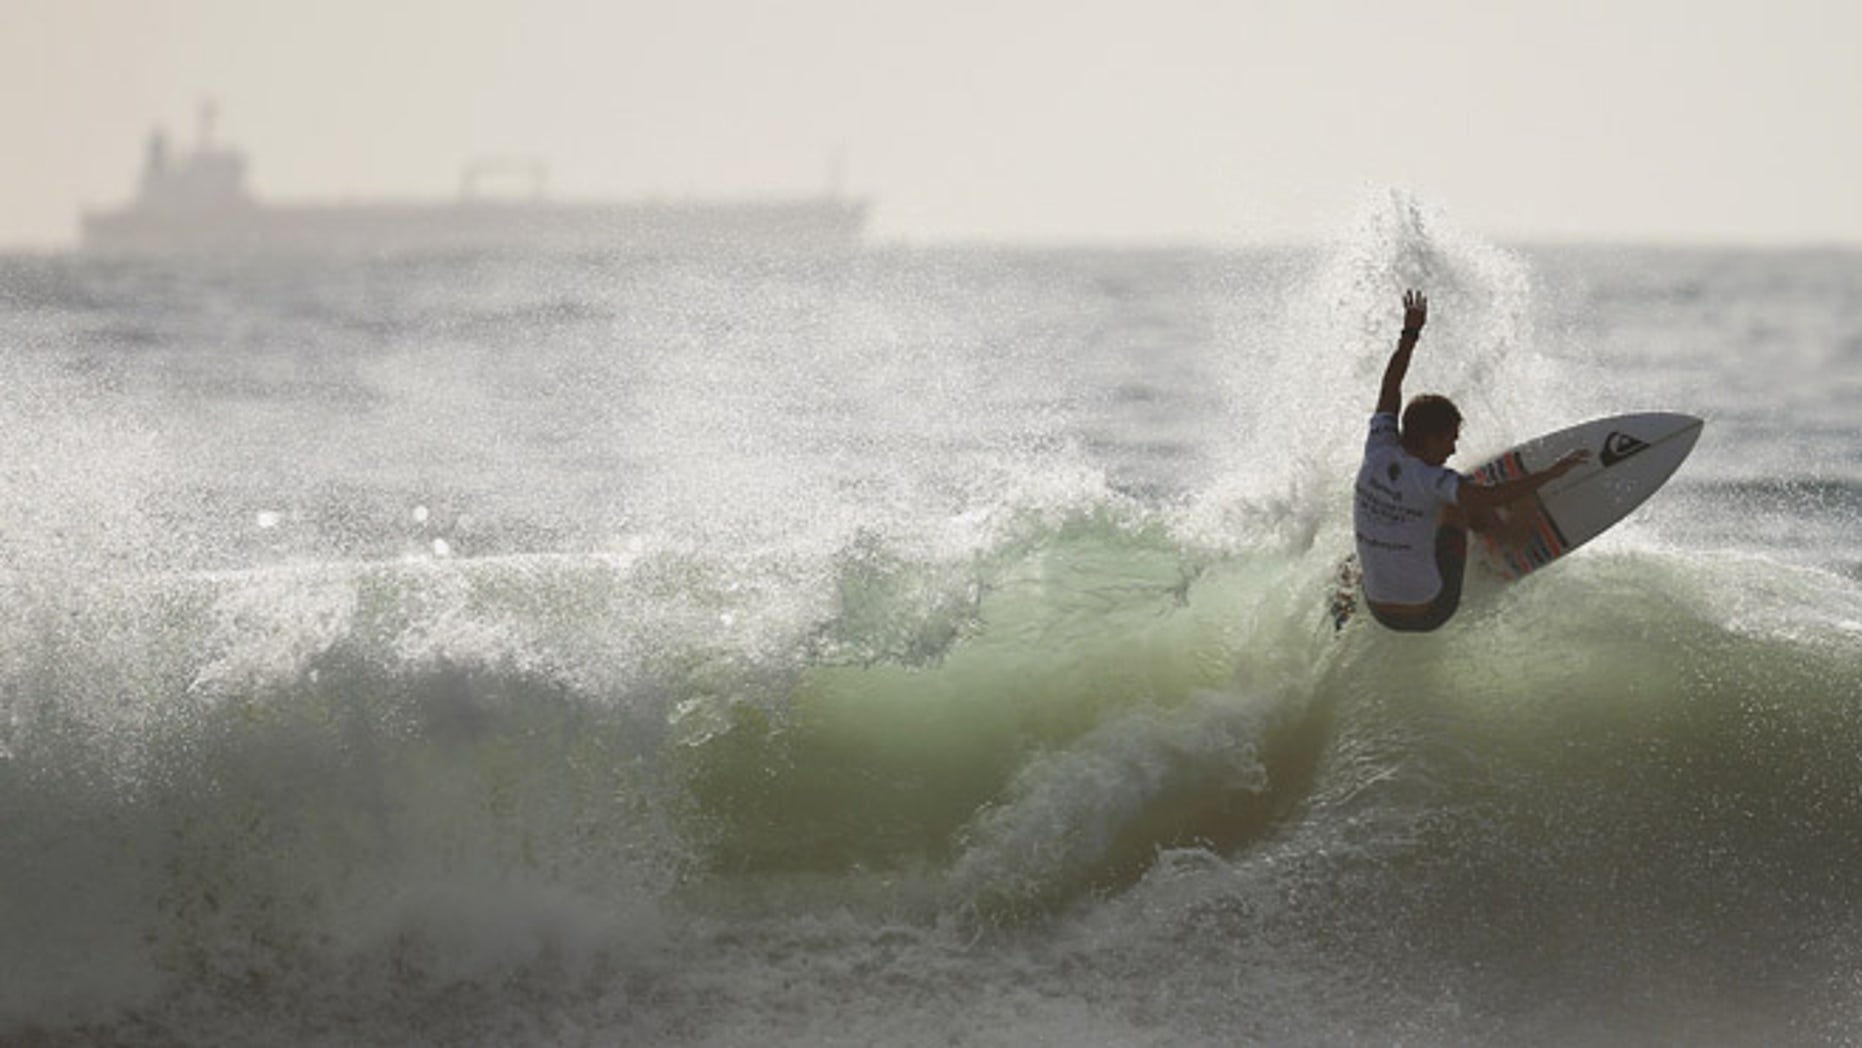 SYDNEY, AUSTRALIA - FEBRUARY 14: Jesse Mendes of Brazil competes during the Australian Open of Surfing at Manly Beach on February 14, 2015 in Sydney, Australia.  (Photo by Cameron Spencer/Getty Images)